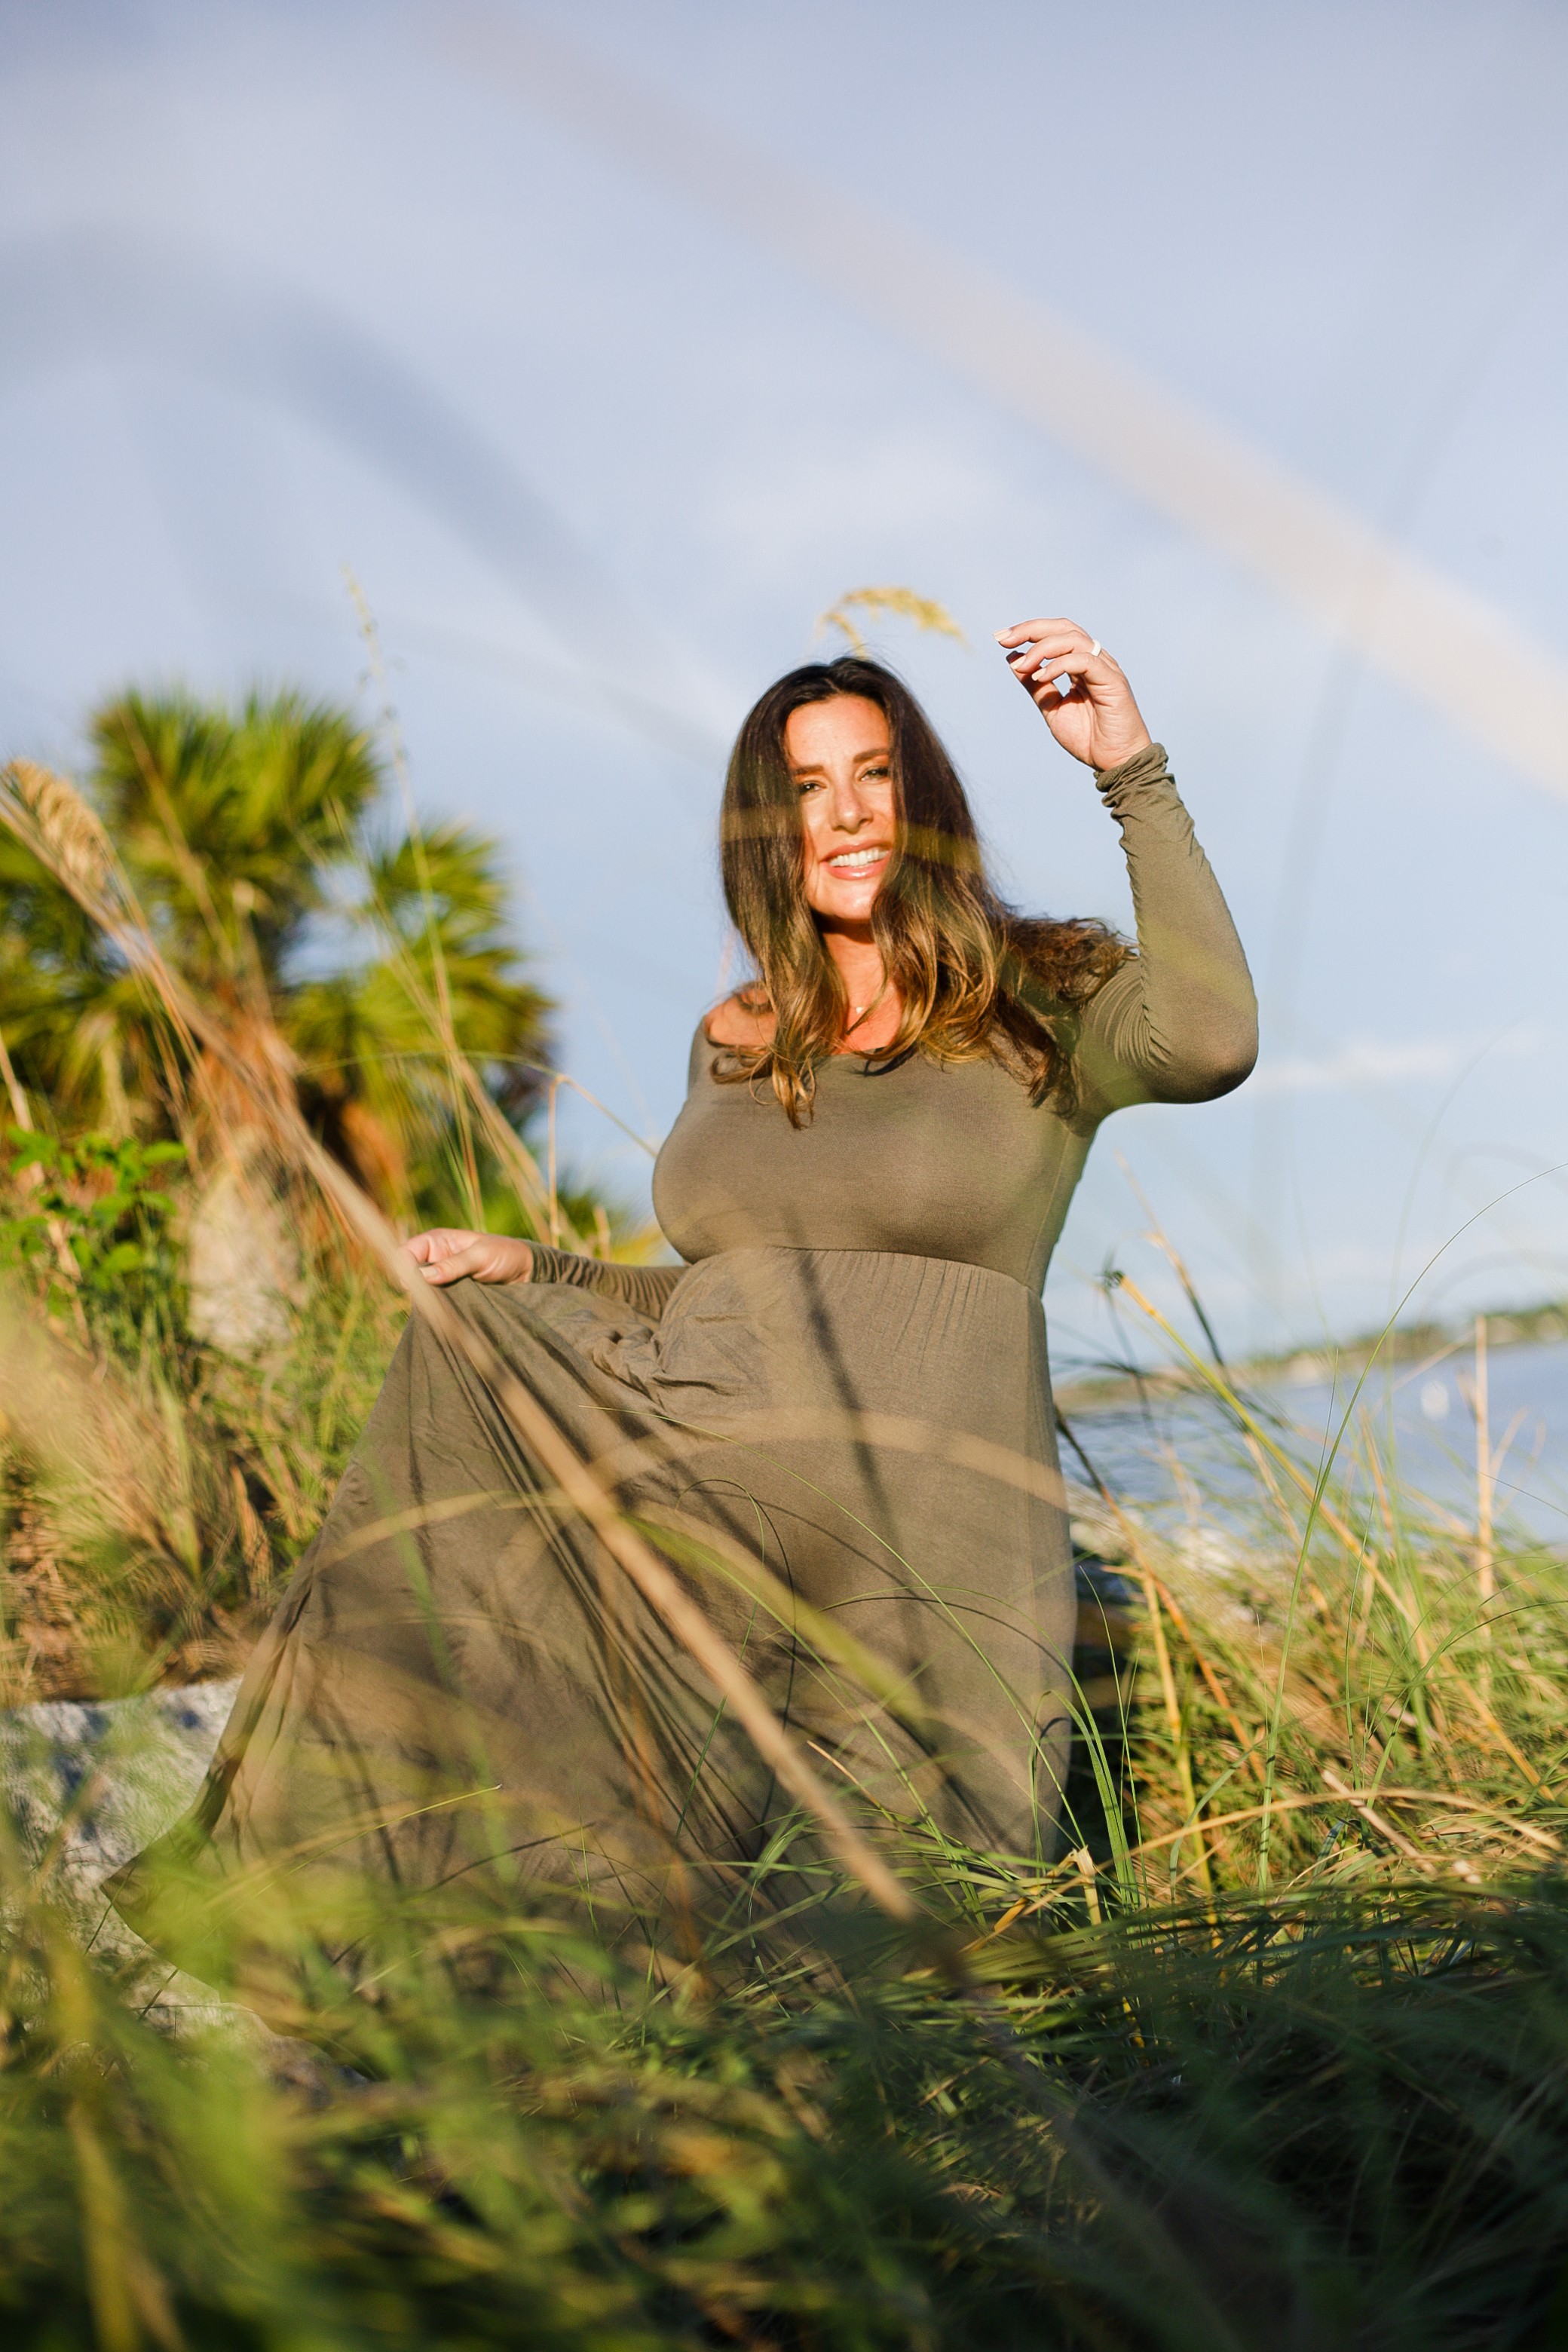 Maternity in olive green dress from Pink Blush Maternity, plus other olive green dress options! Beach maternity pictures and pregnancy photoshoot ideas from top Florida lifestyle blogger Tabitha Blue of Fresh Mommy Blog.